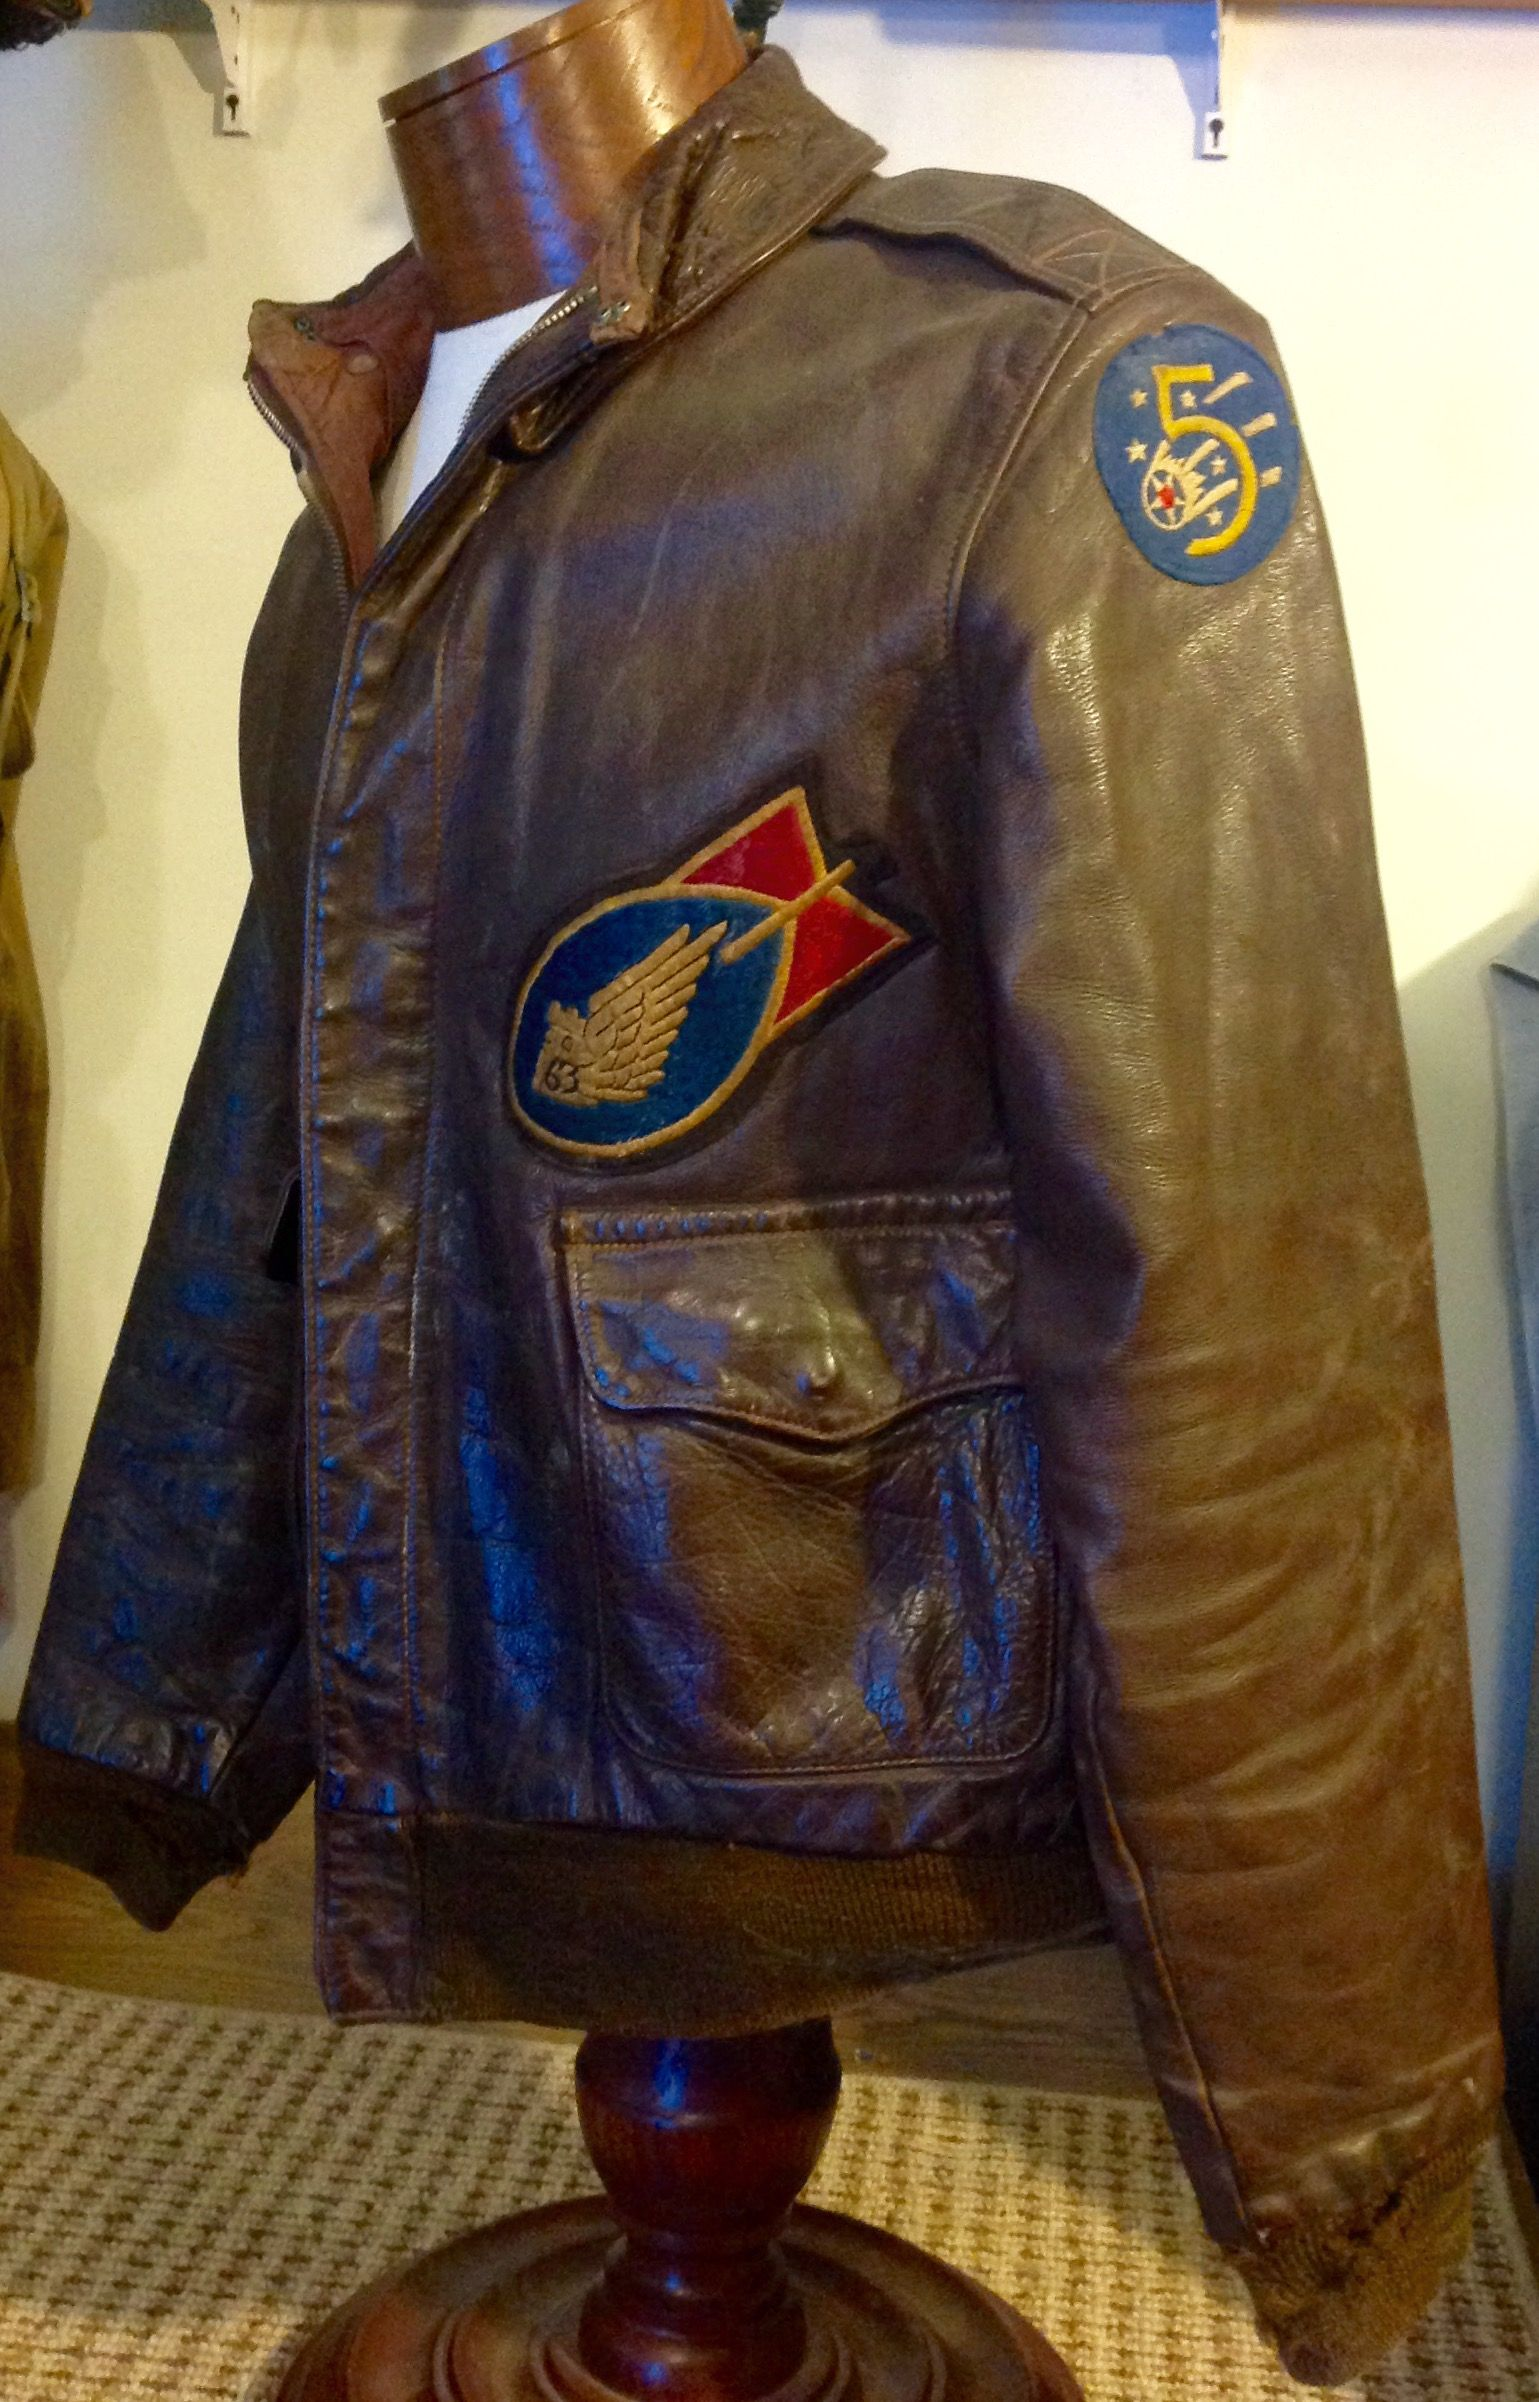 94381f0774b A2 flight jacket with 63rd bomb squadron and 5th army air force patches (C.  Huff